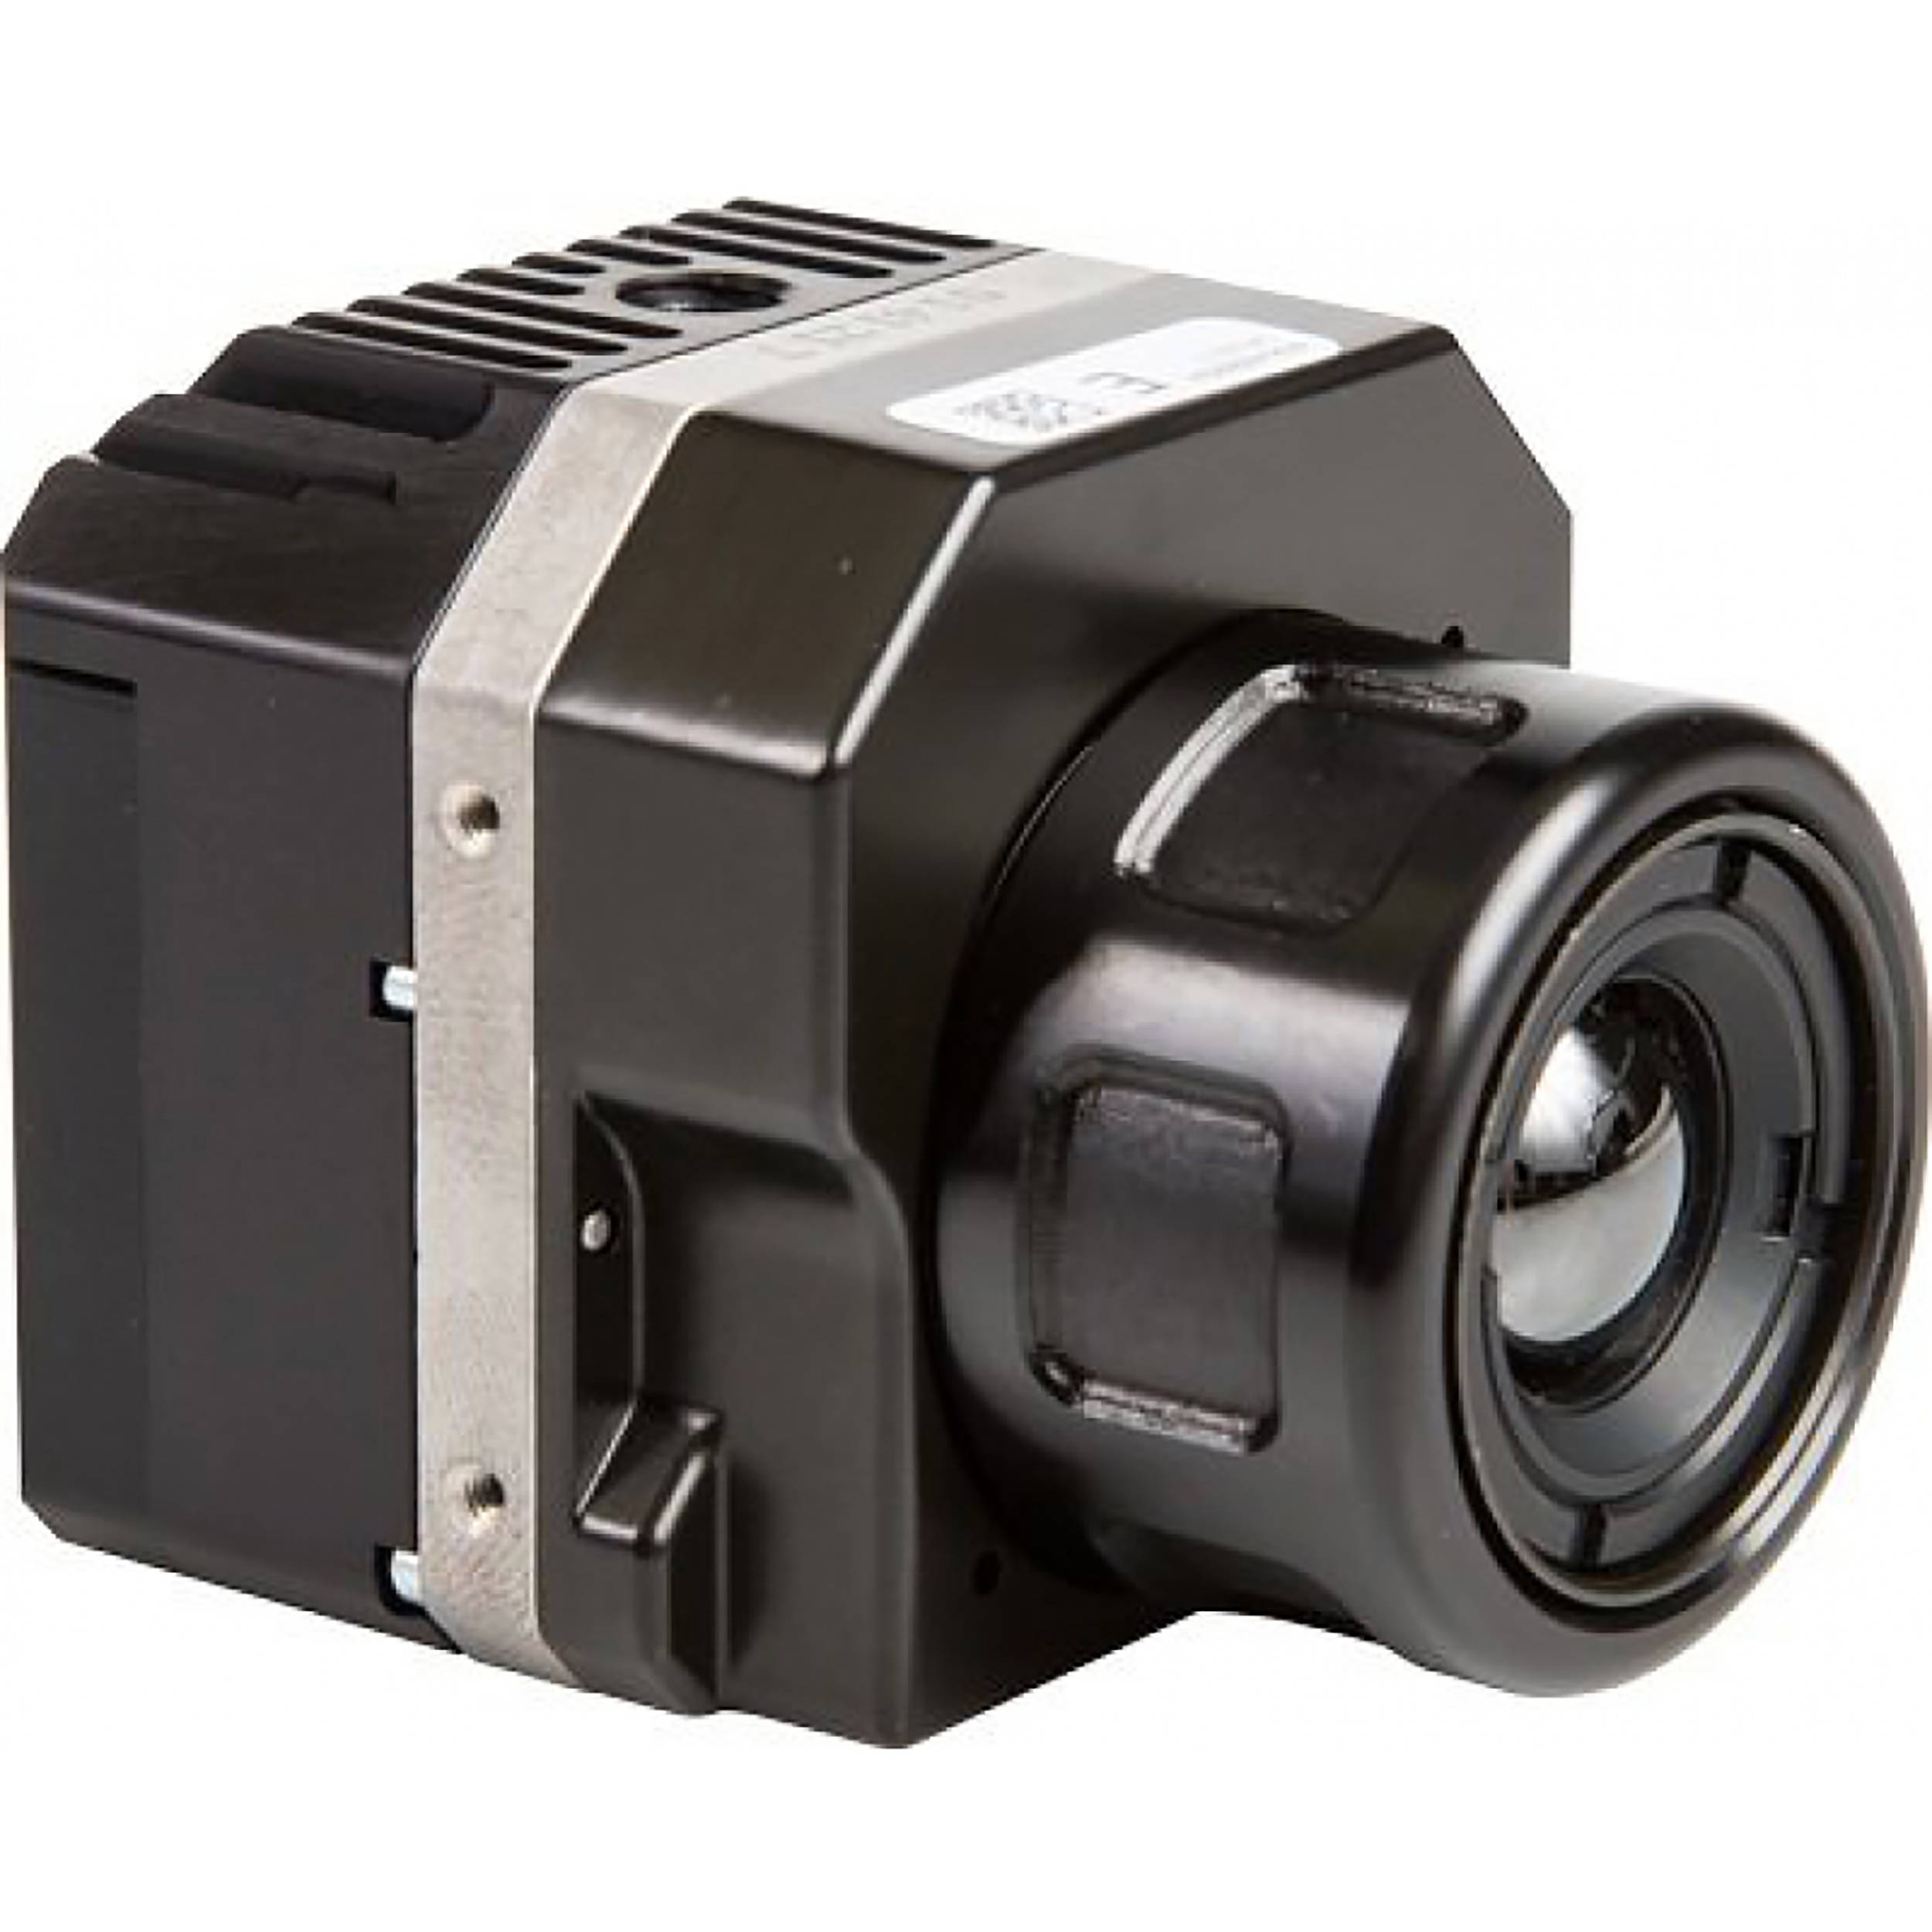 FLIR Vue Pro Thermal Imaging Camera for Commercial sUAS with 9mm Lens (30  Hz)